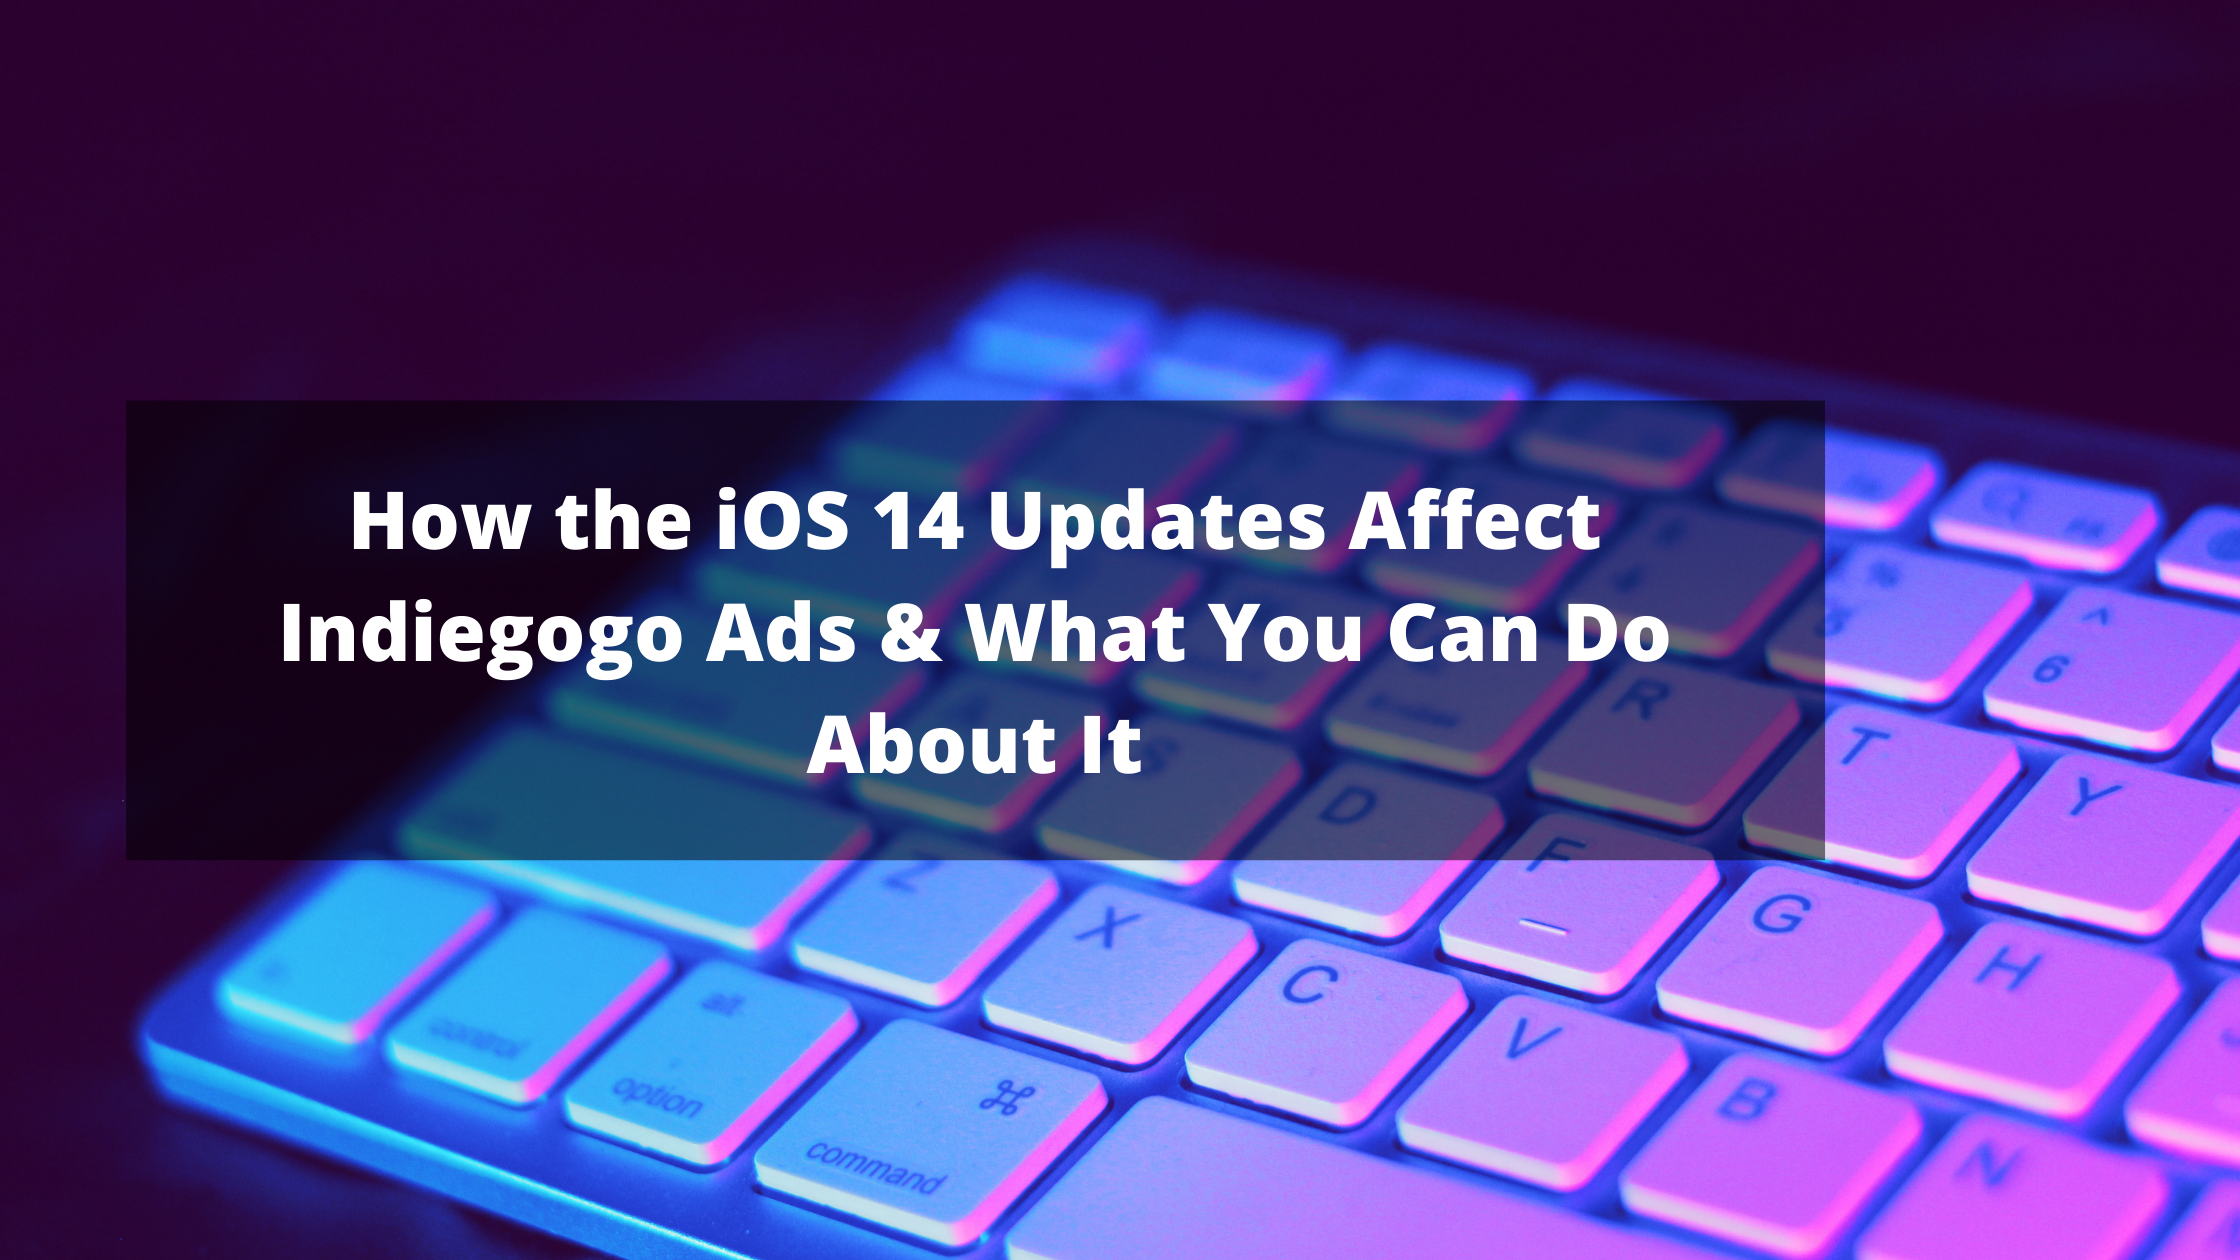 How the New IOS 14 Update Affects facebook ads for your indiegogo campaign & what you can do about it.